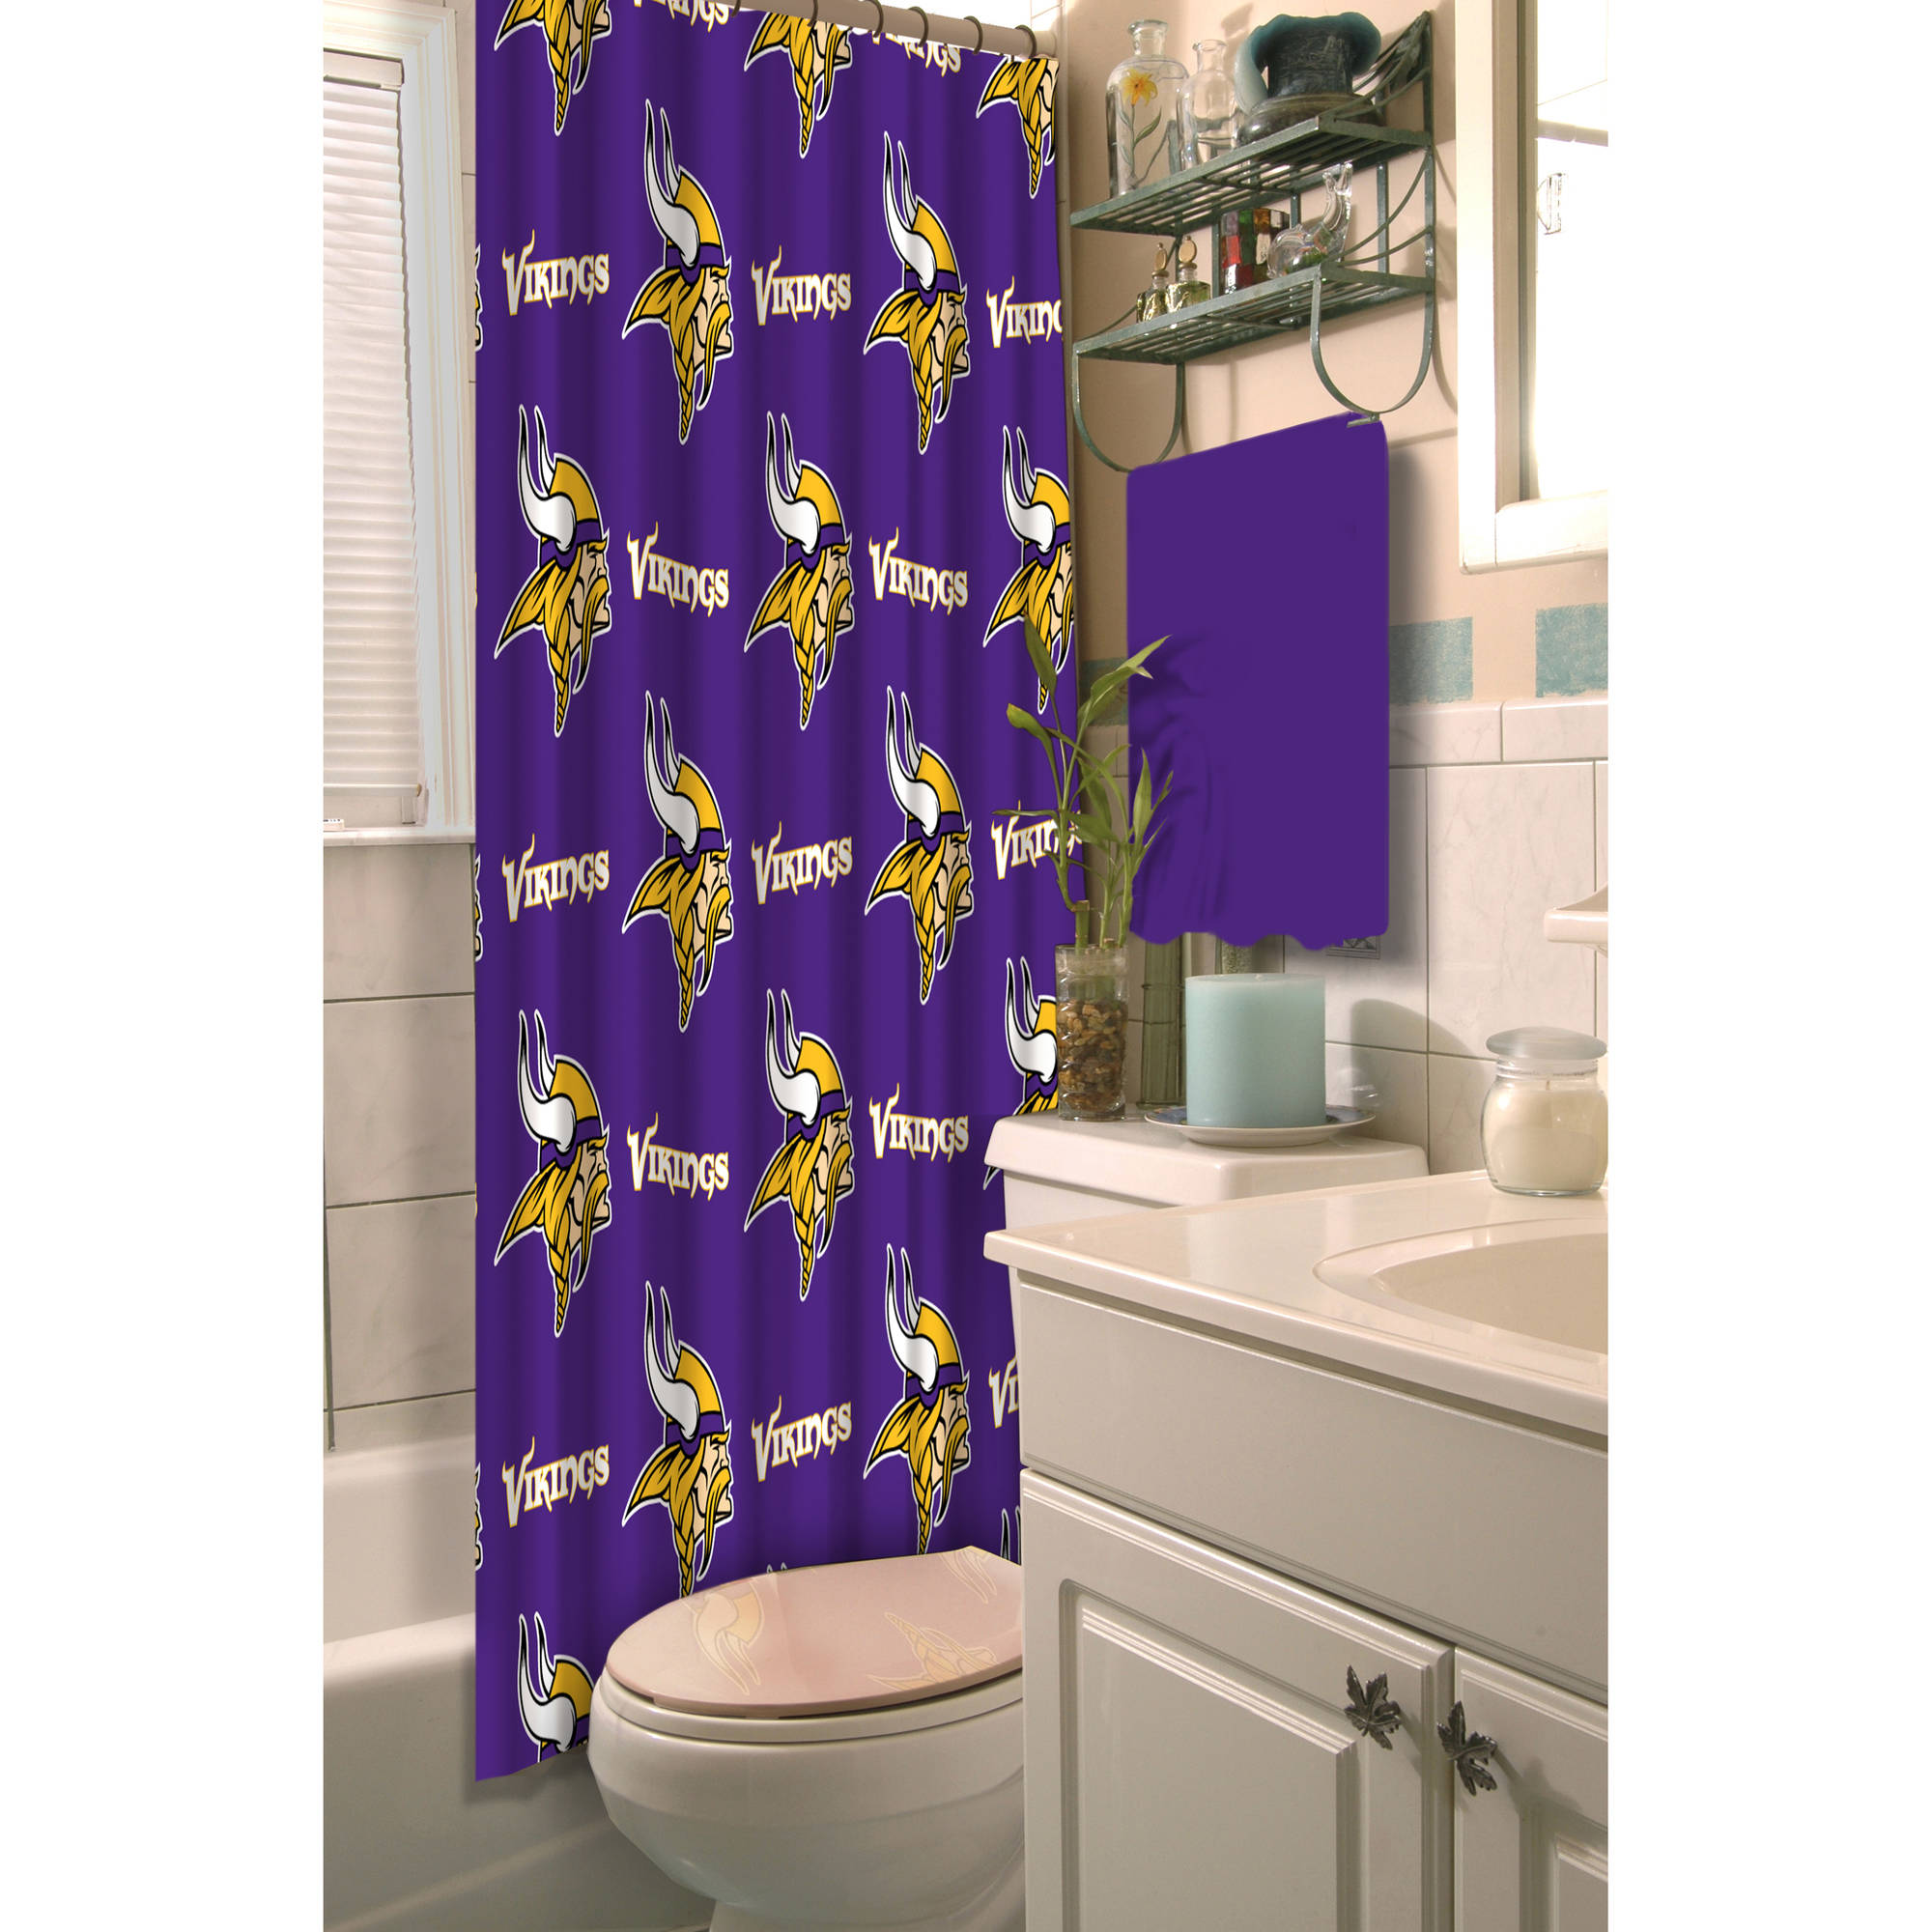 NFL Shower Curtain, Vikings